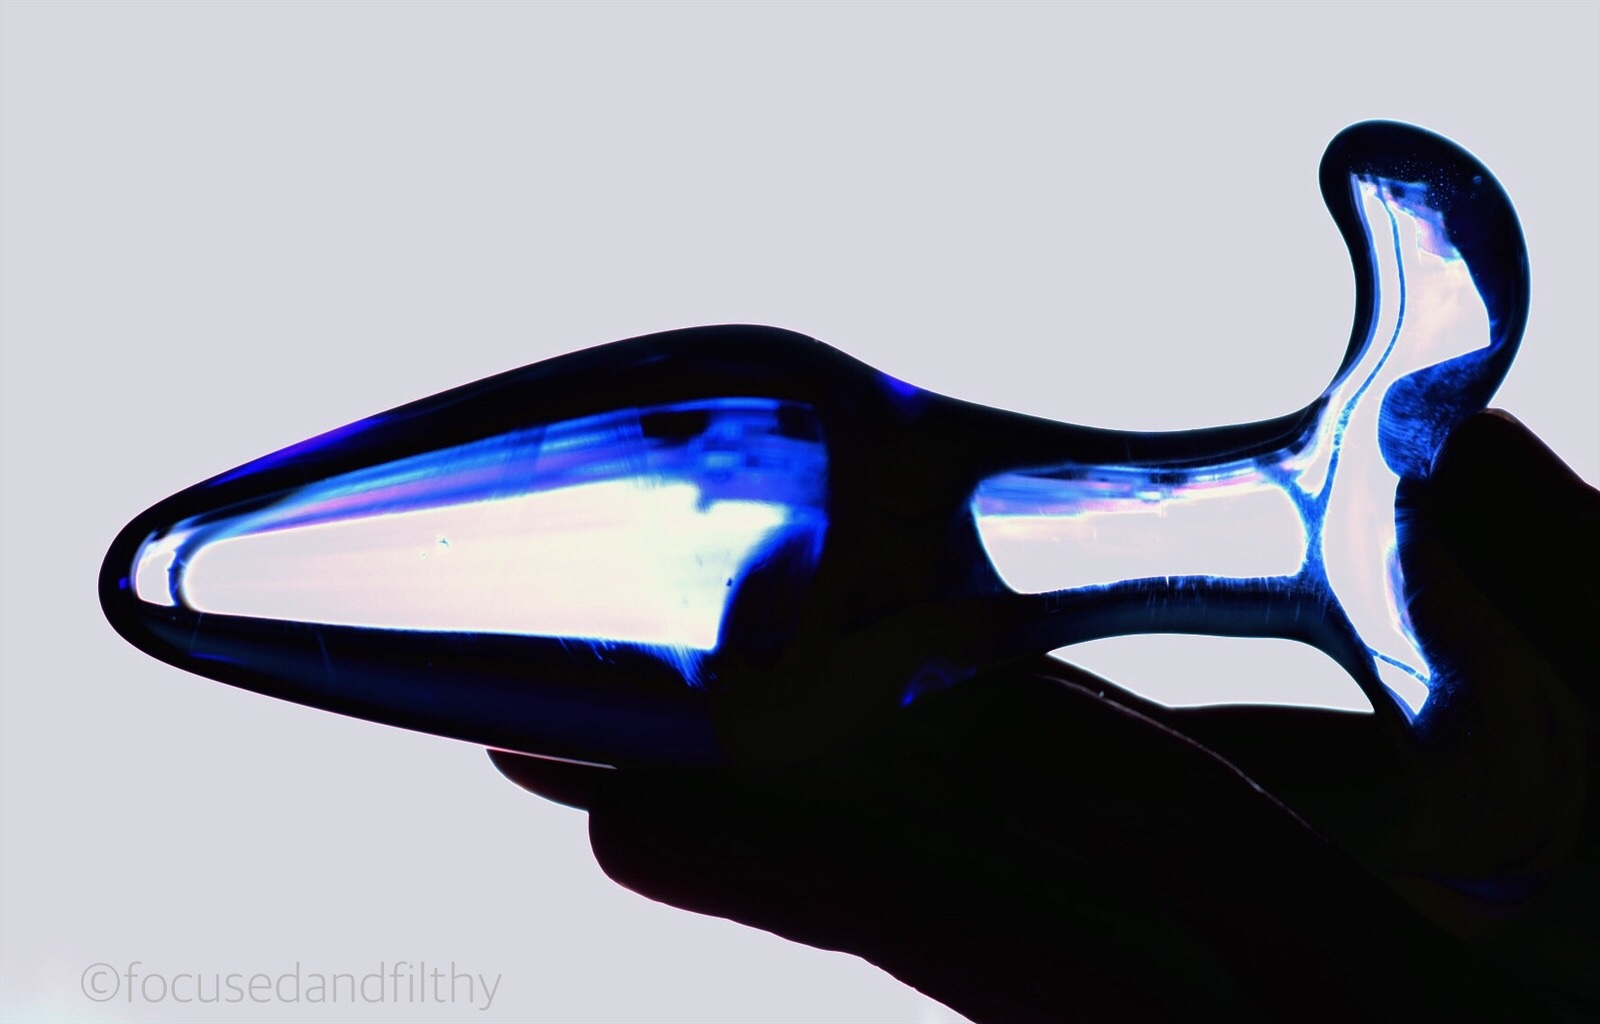 Colour photograph of a blue glass butt plug held flat in a hand like a torpedo